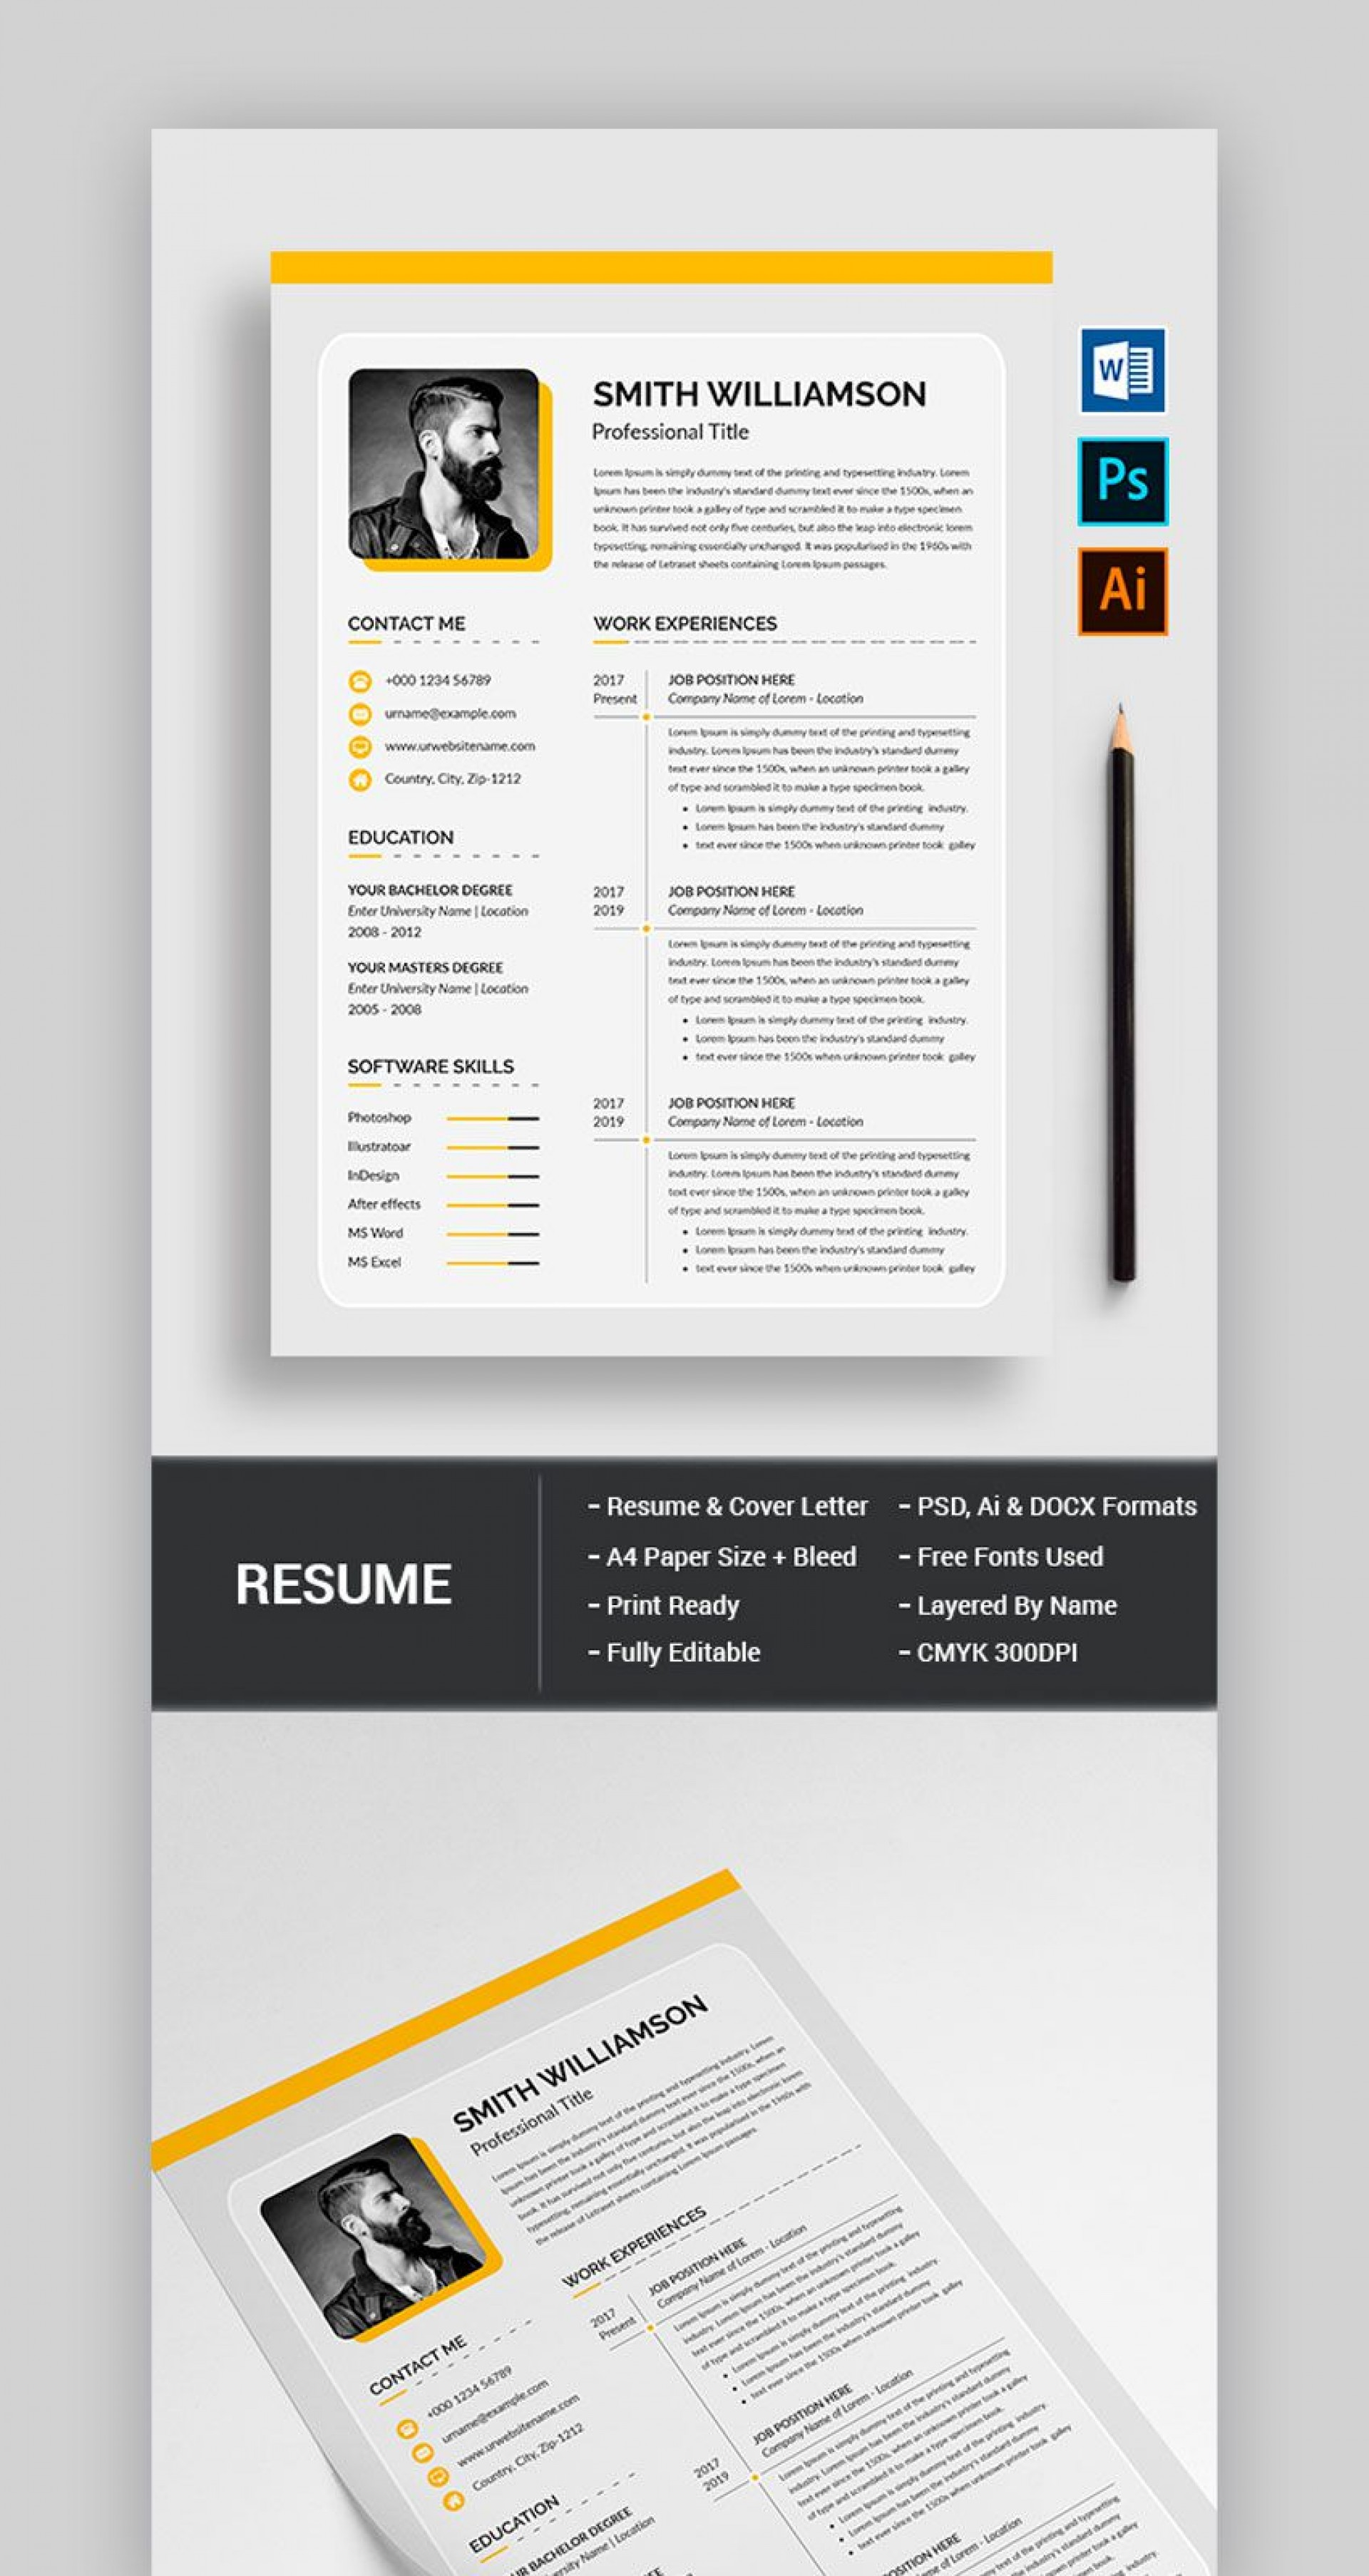 005 Archaicawful Photoshop Resume Template Free Psd Sample 1920